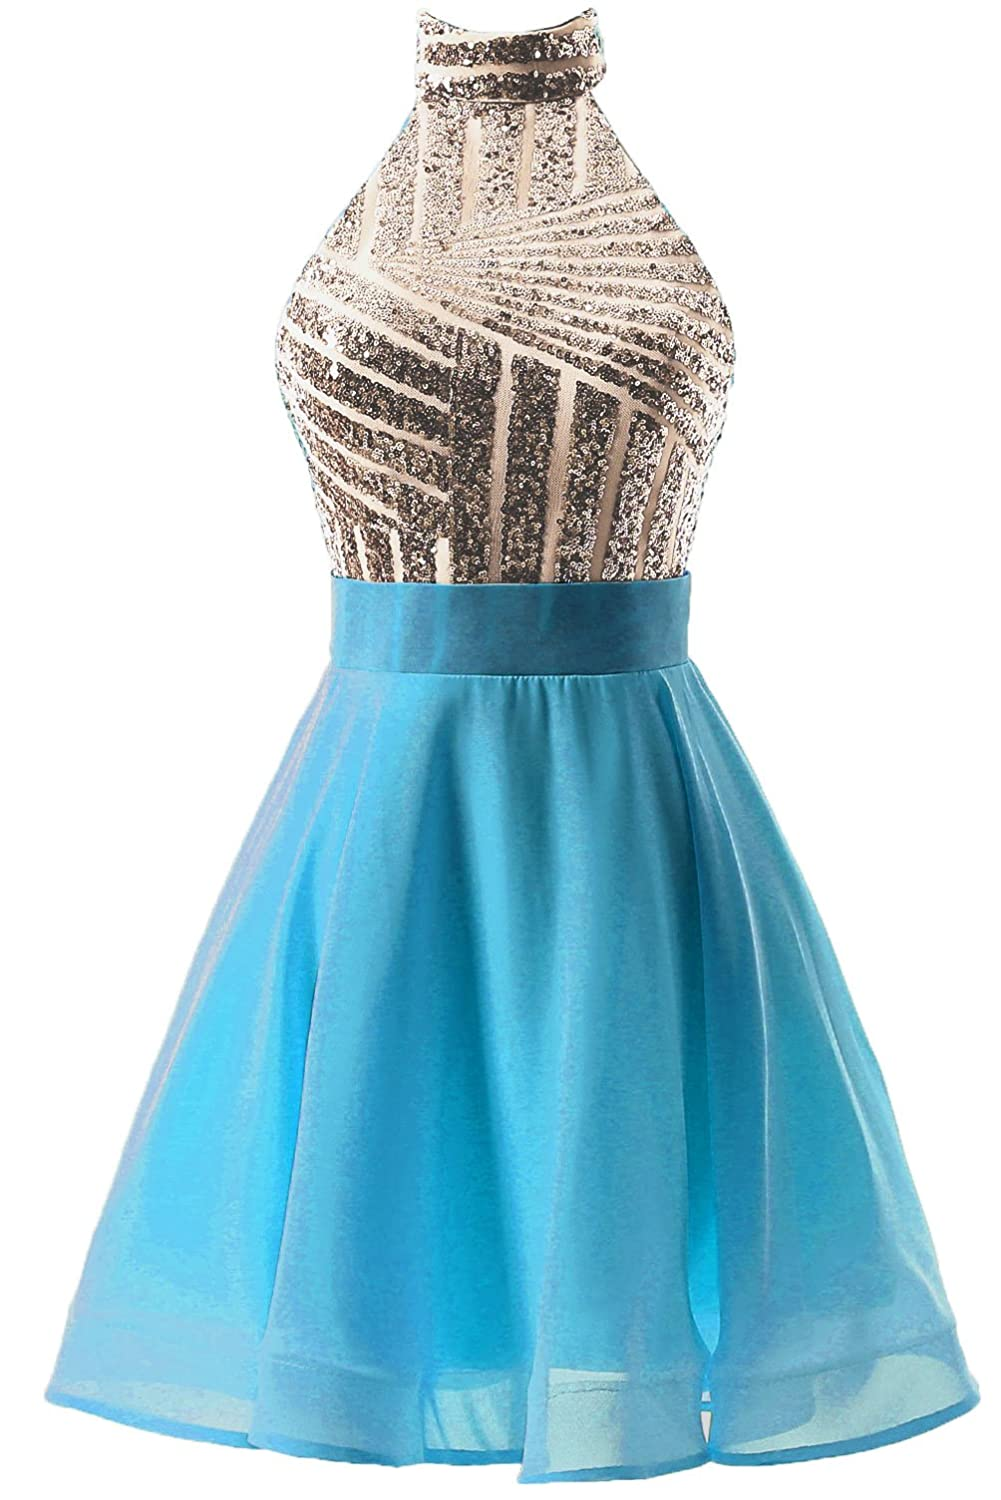 DYS Women\'s Short Halter Prom Party Dress Backless Homecoming Dress ...